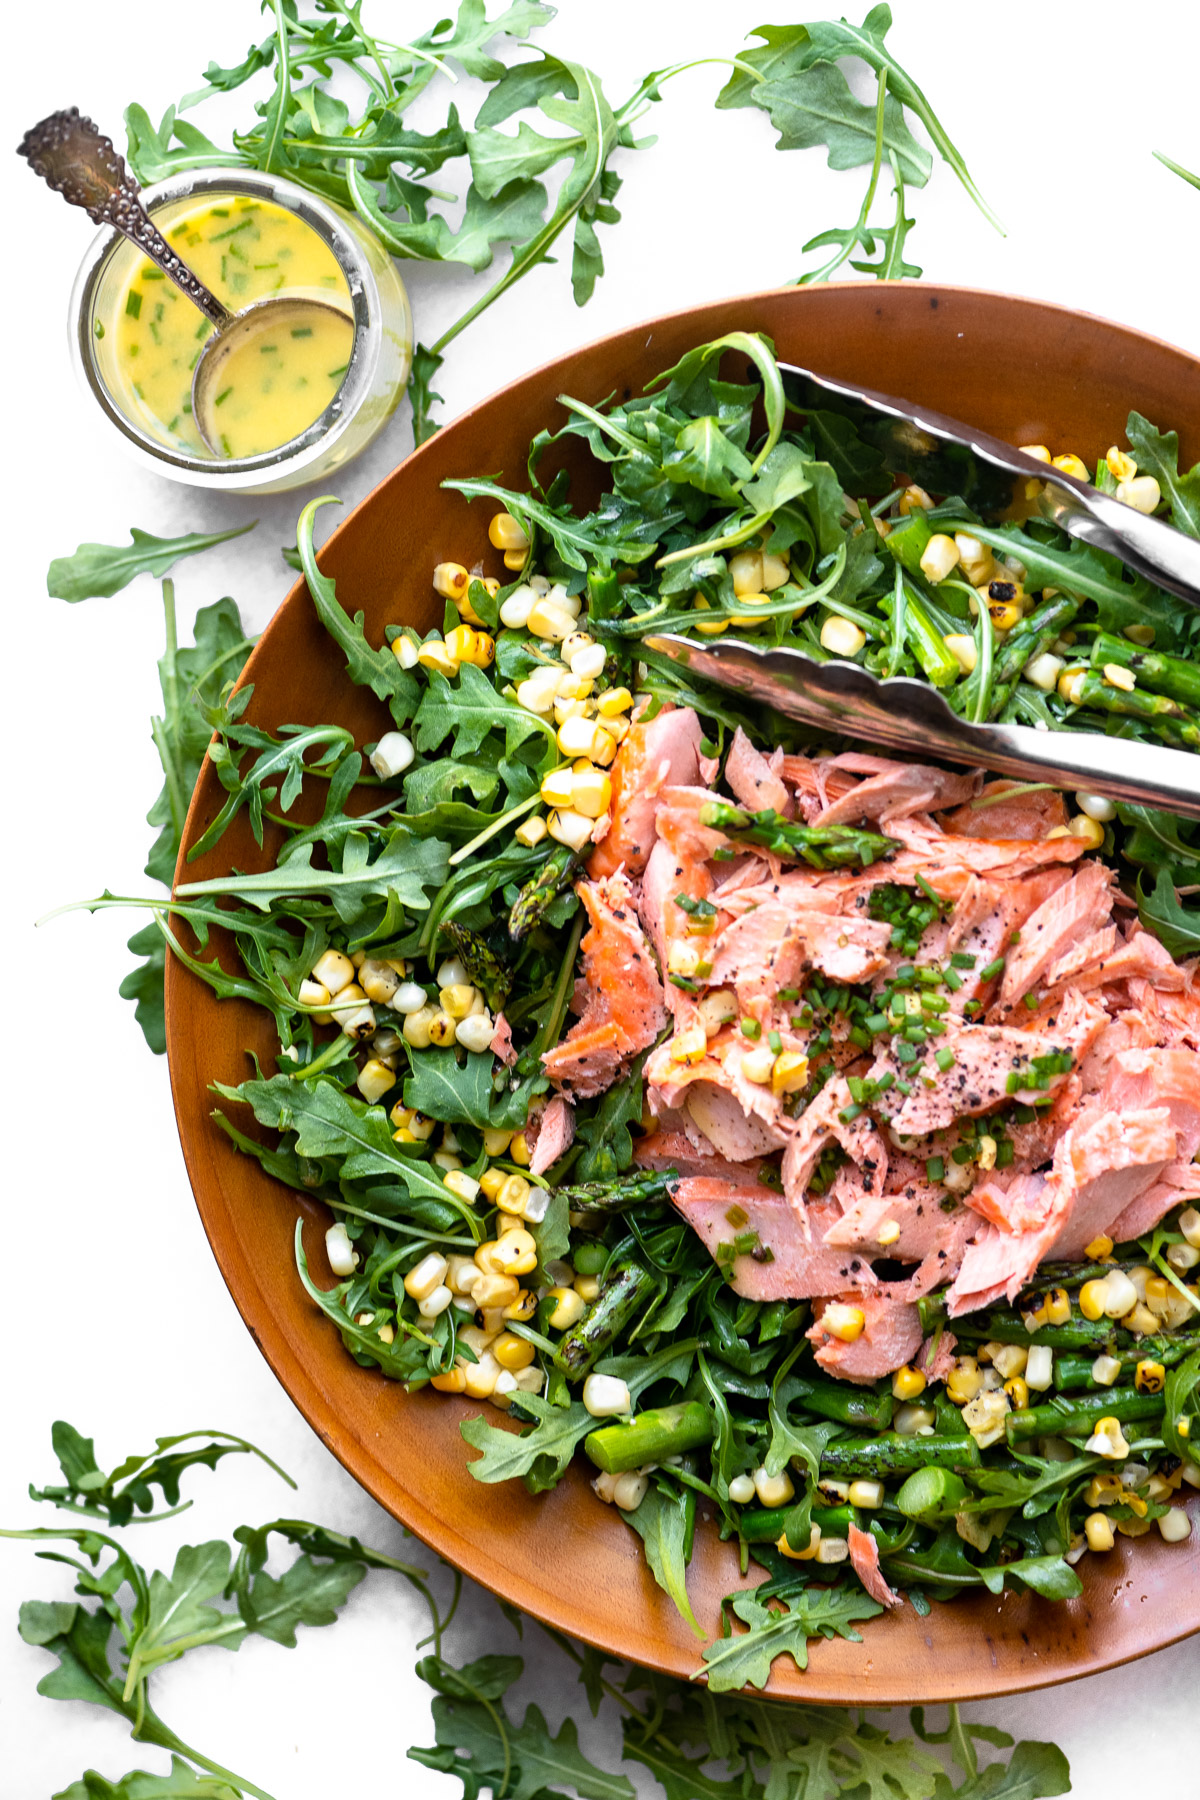 Blistered corn and asparagus salad with salmon in a wooden bowl